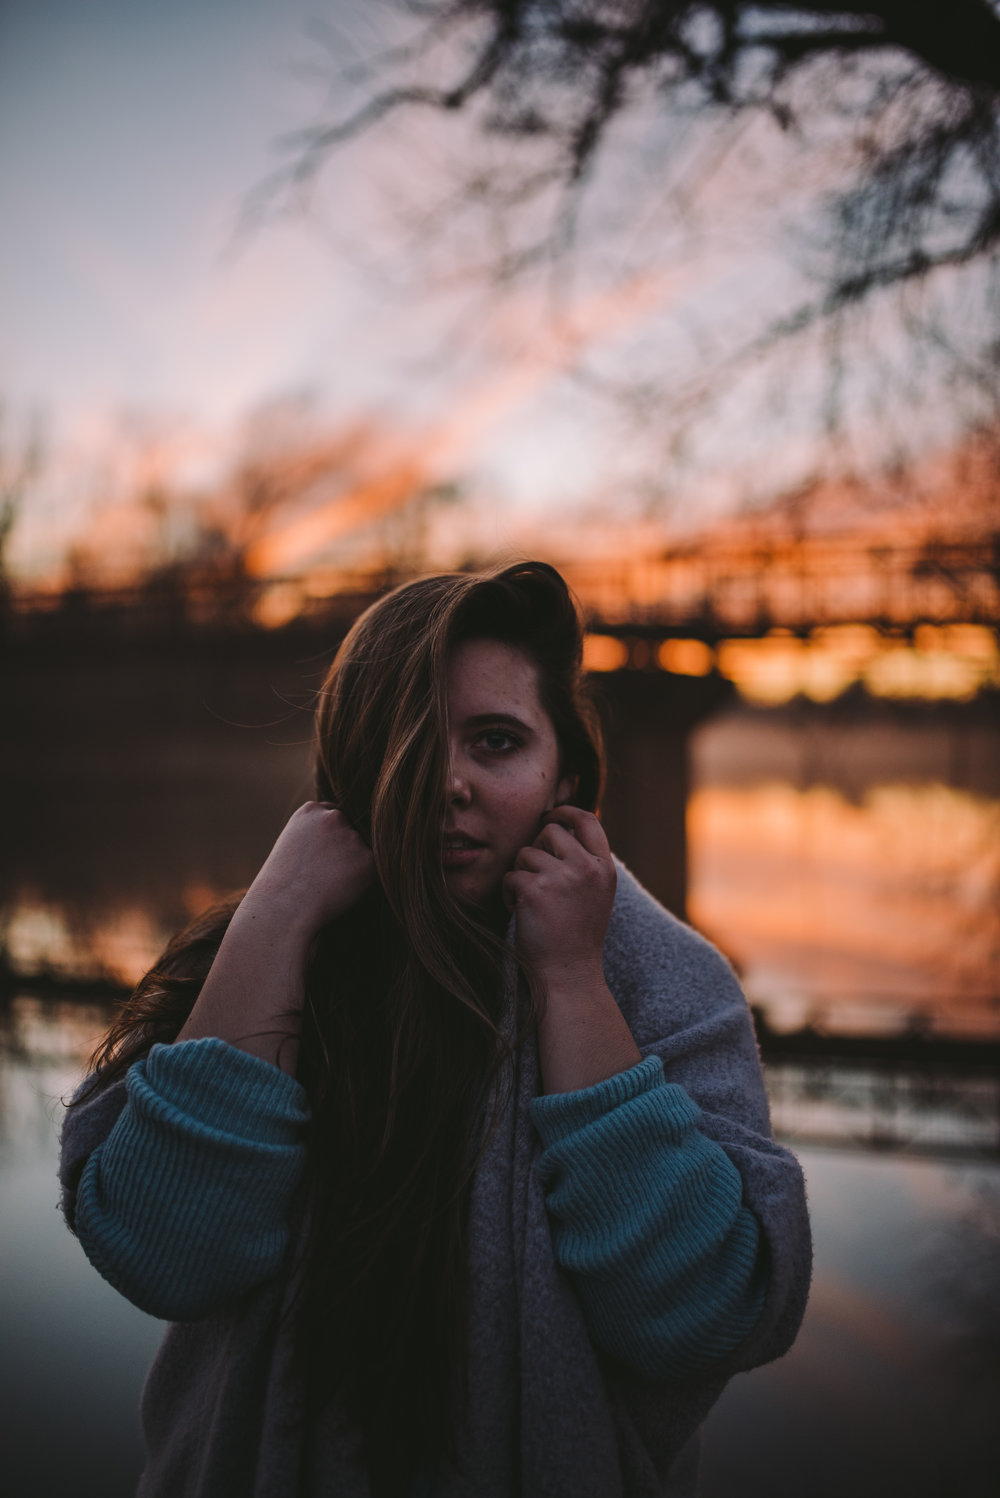 Sunset_IndianapolisIndiana_January2018_Senior Photography In Tempe_ArizonaSeniorPhotographer_SamanthaRosePhotography_final_-1.jpg